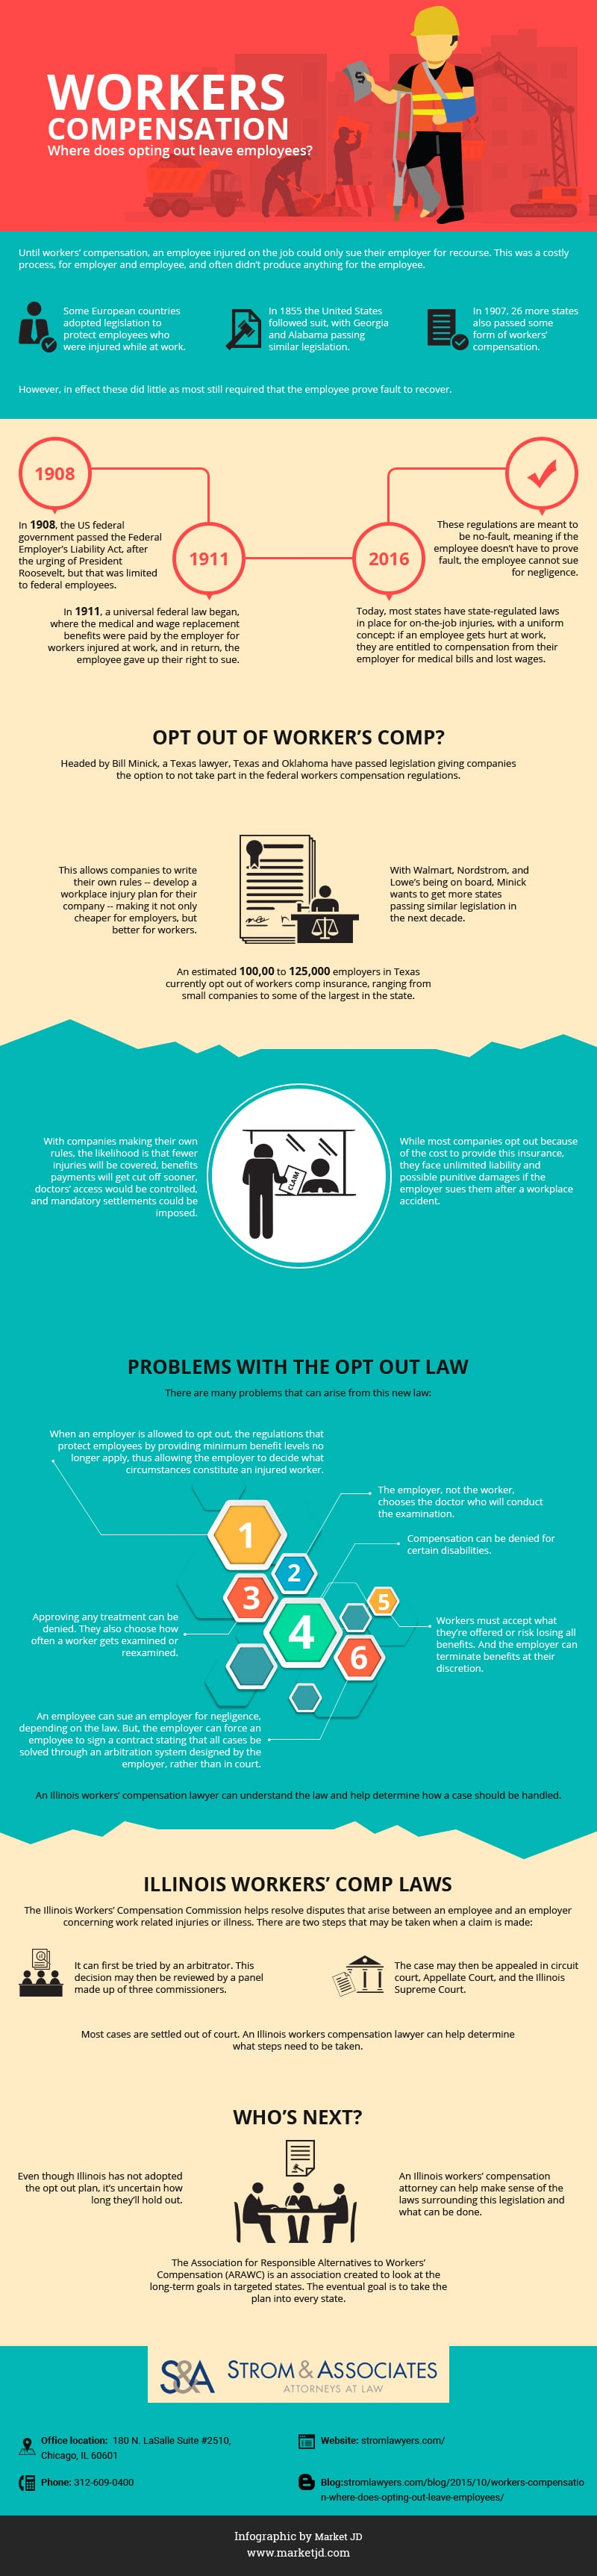 workers' comp infographic